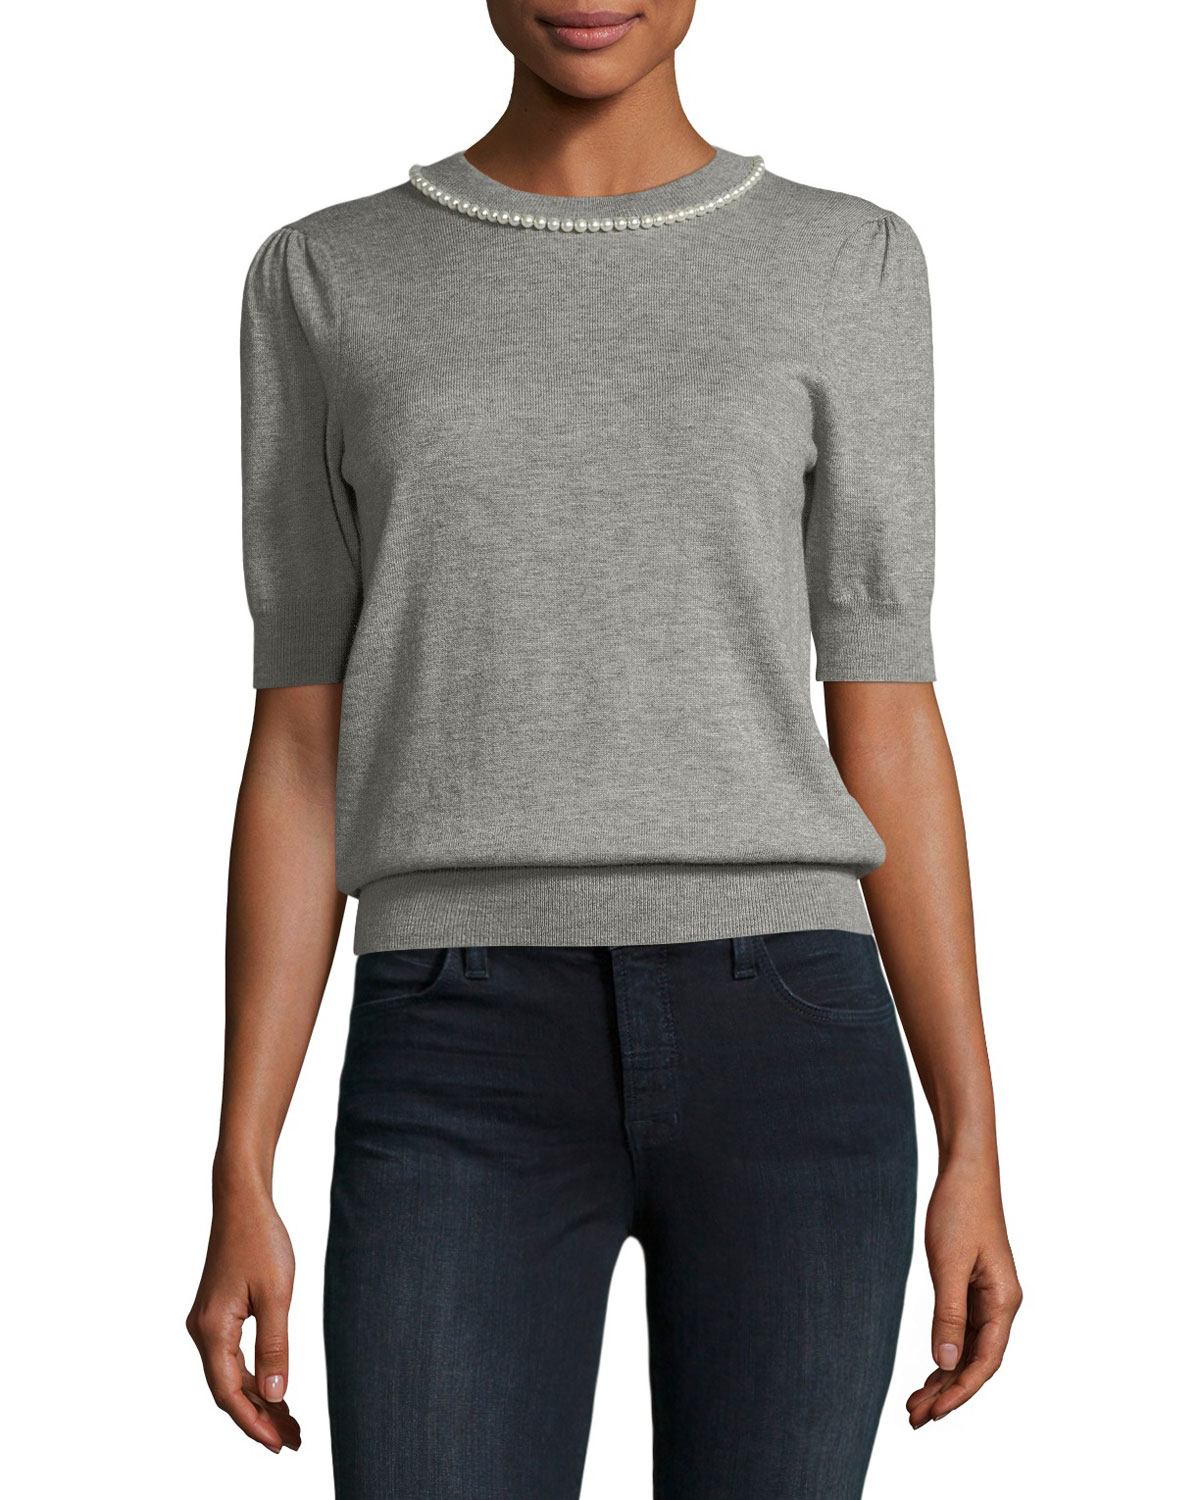 pearly embellished half-sleeve top